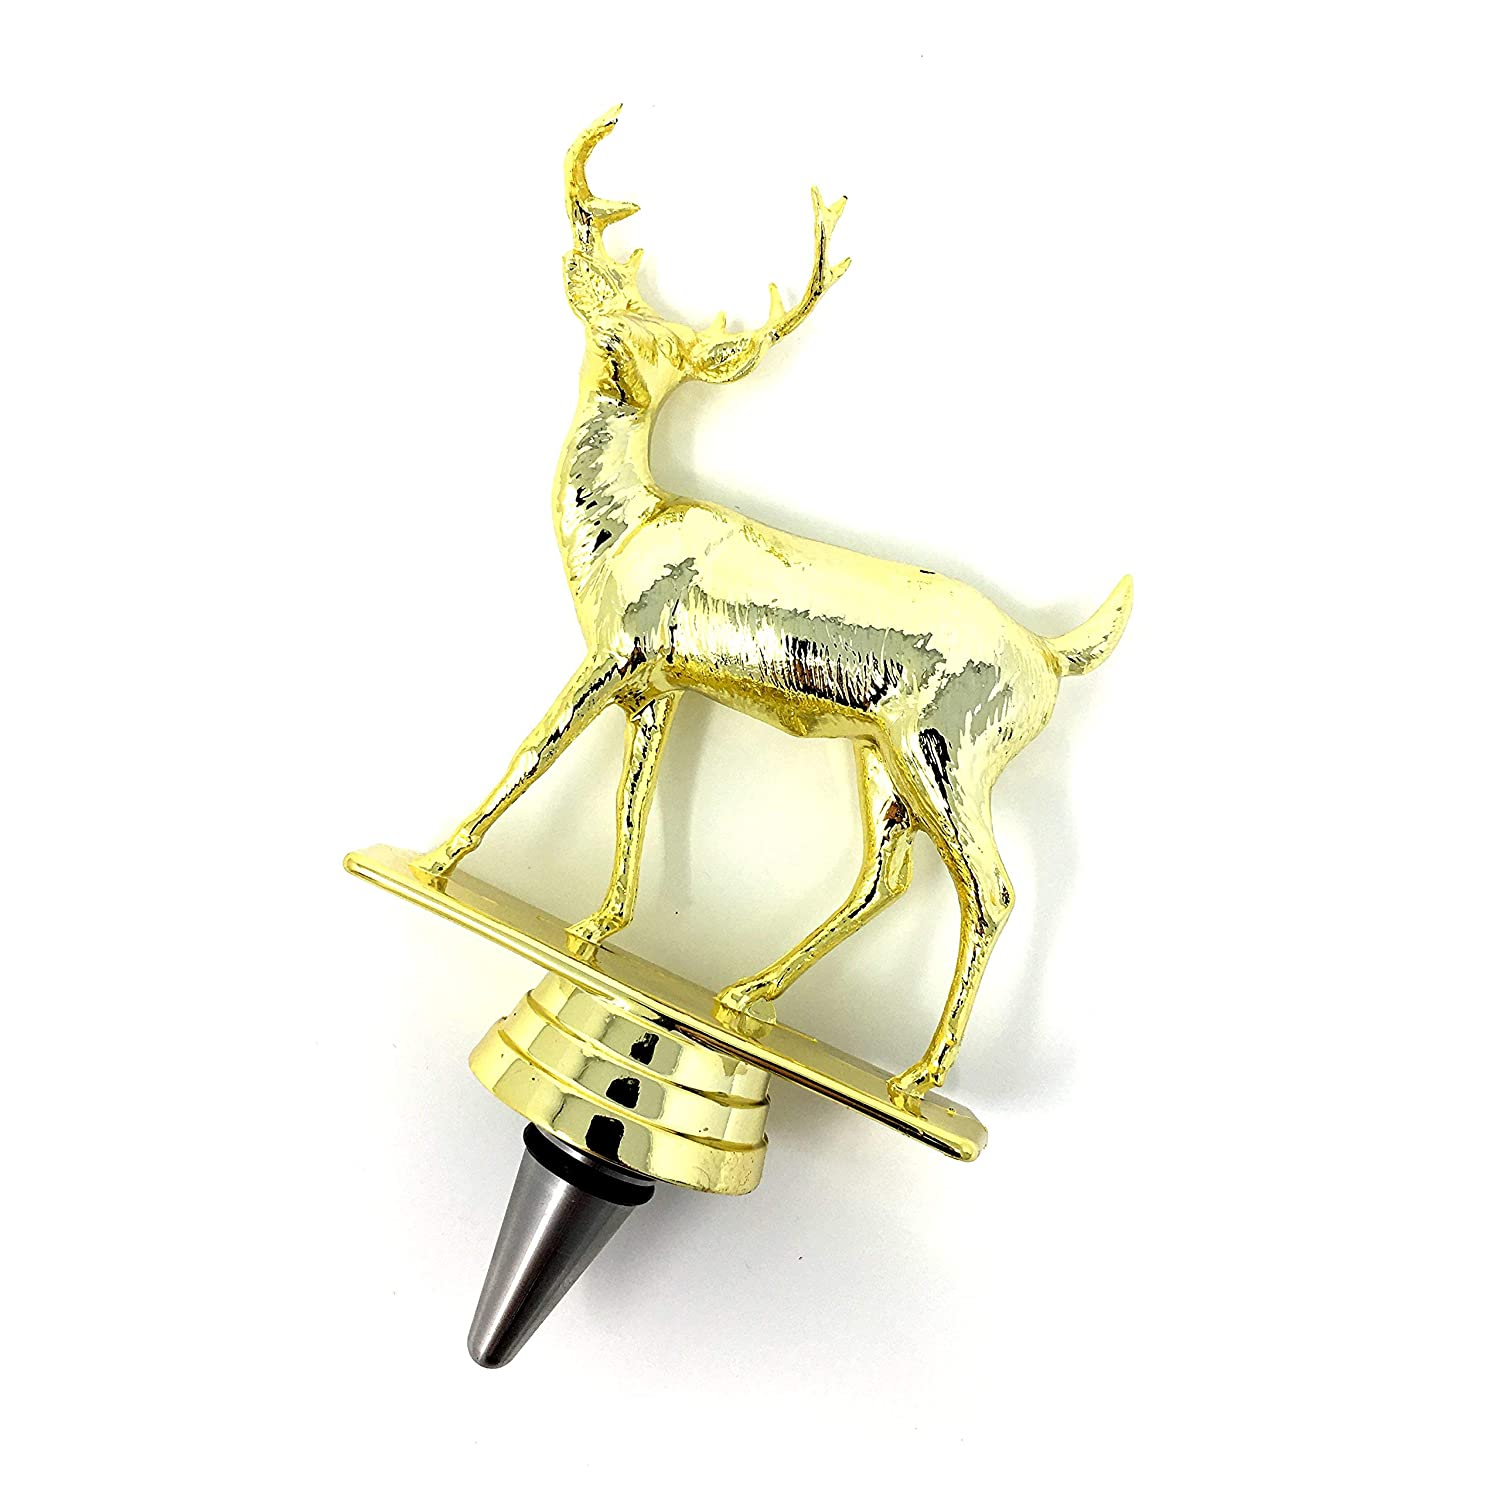 Buck Deer Wine Bottle Stopper - Handmade with Stainless Steel Base and Repurposed Trophy Top